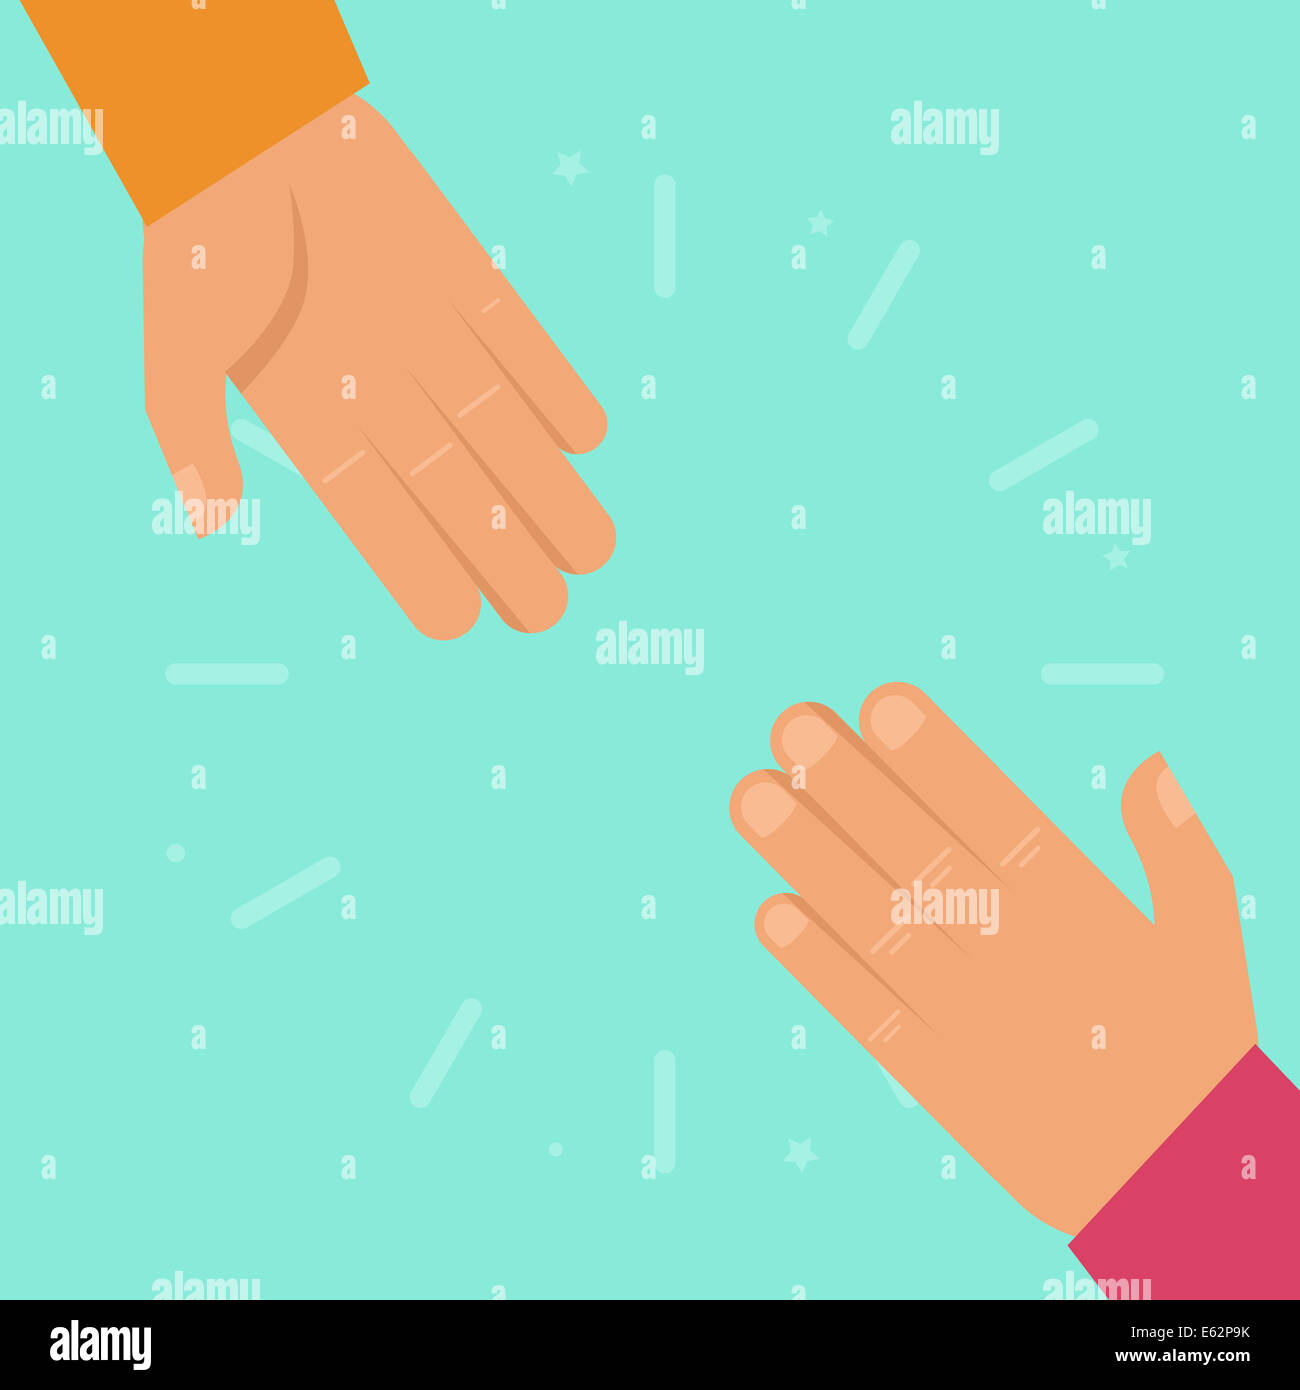 Helping hands in flat style - charity and support concept - Stock Image